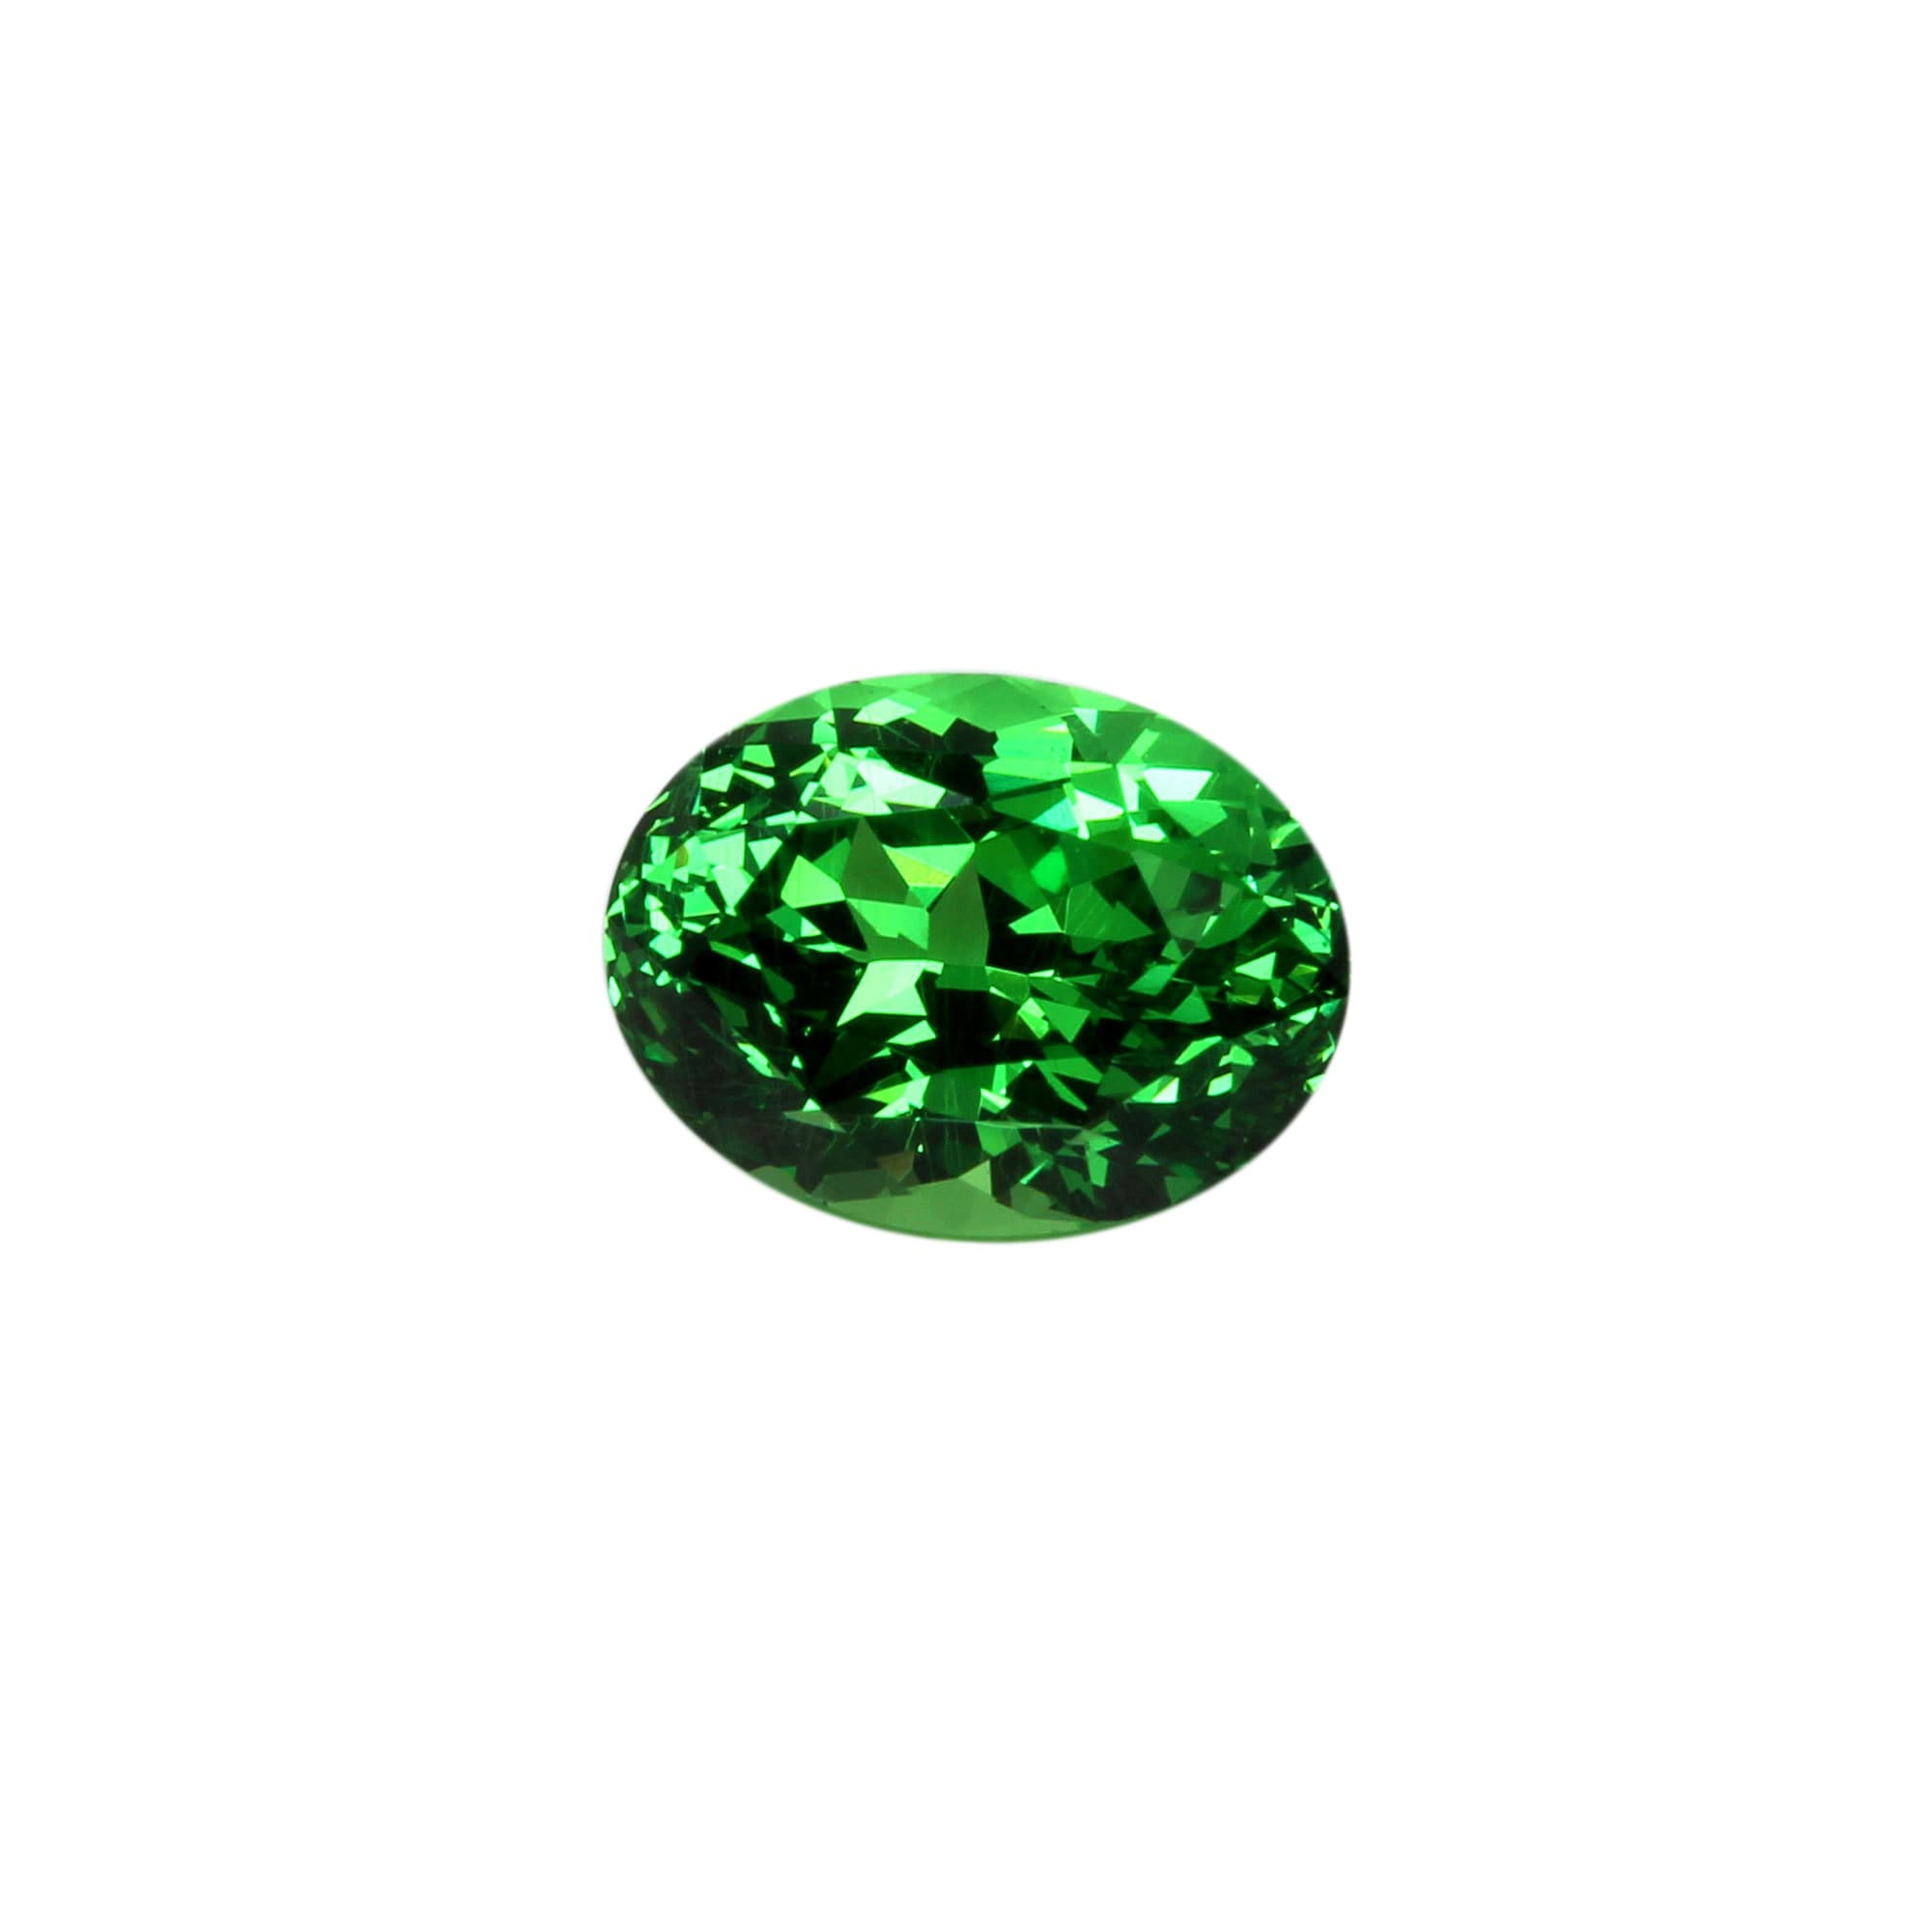 jewels rare tsavorite gems com gemstone gemstones crystals green sale for garnet jewelry energylightandlove